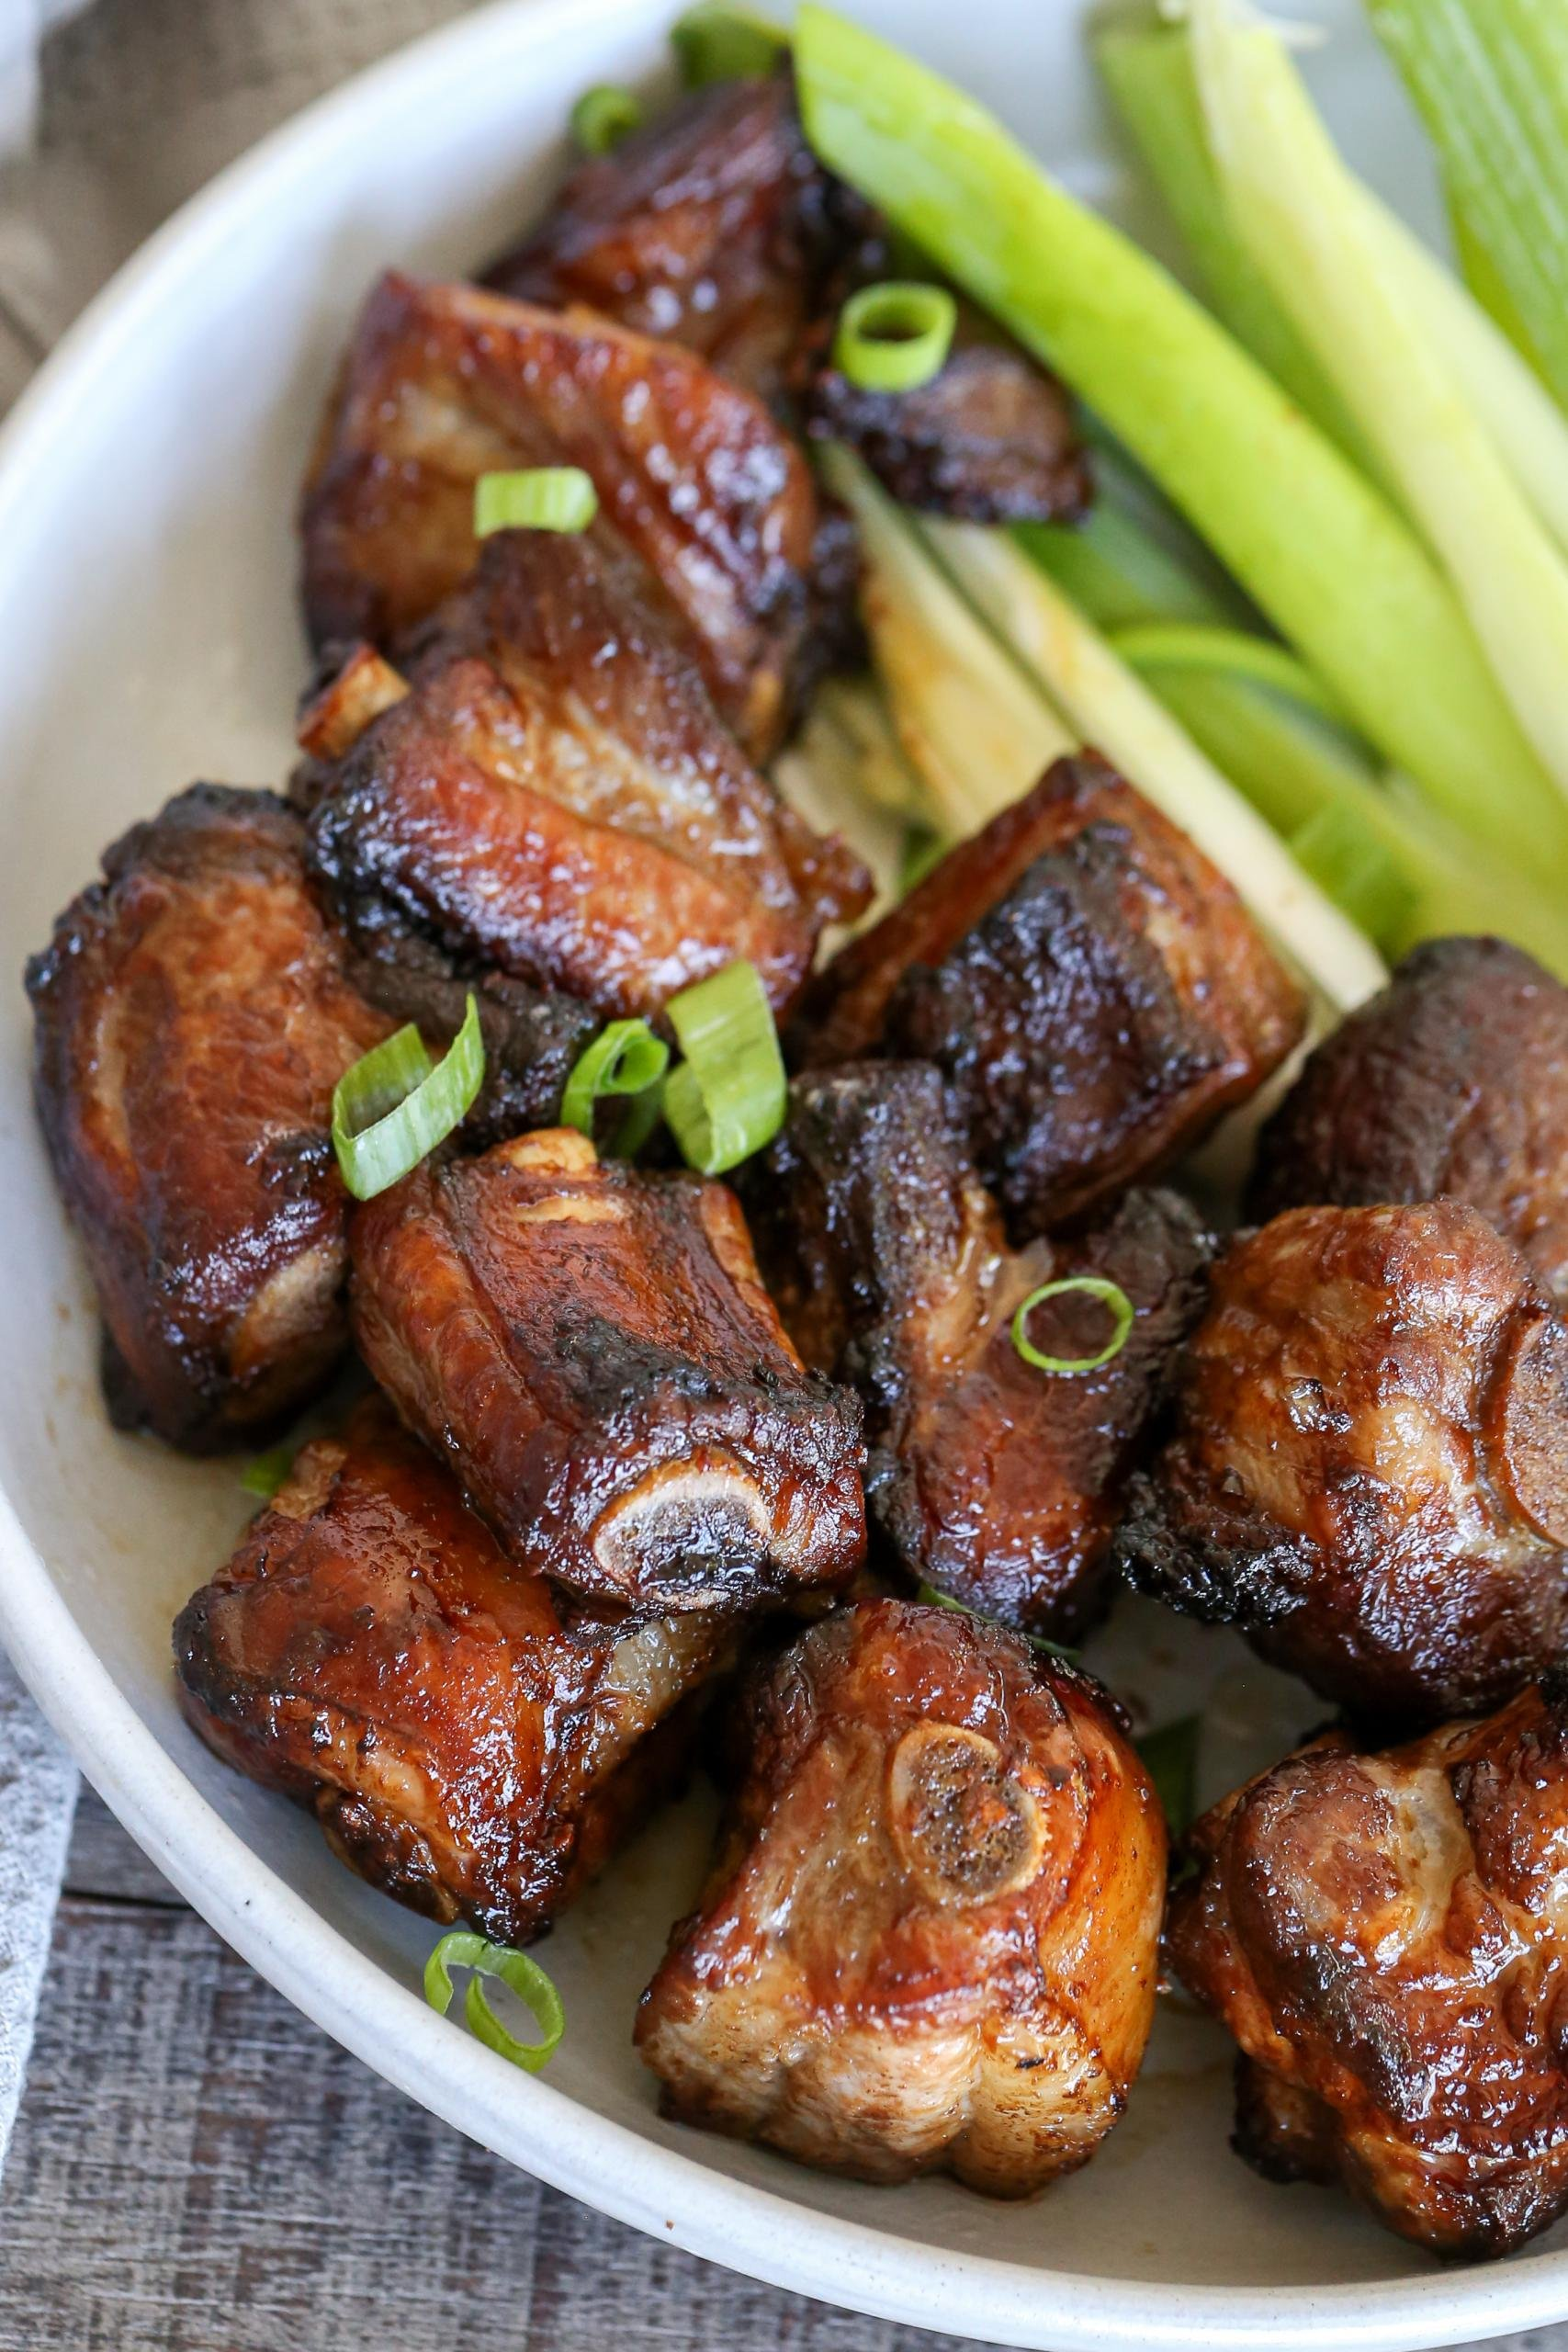 Pork Ribs in a plate with green onions